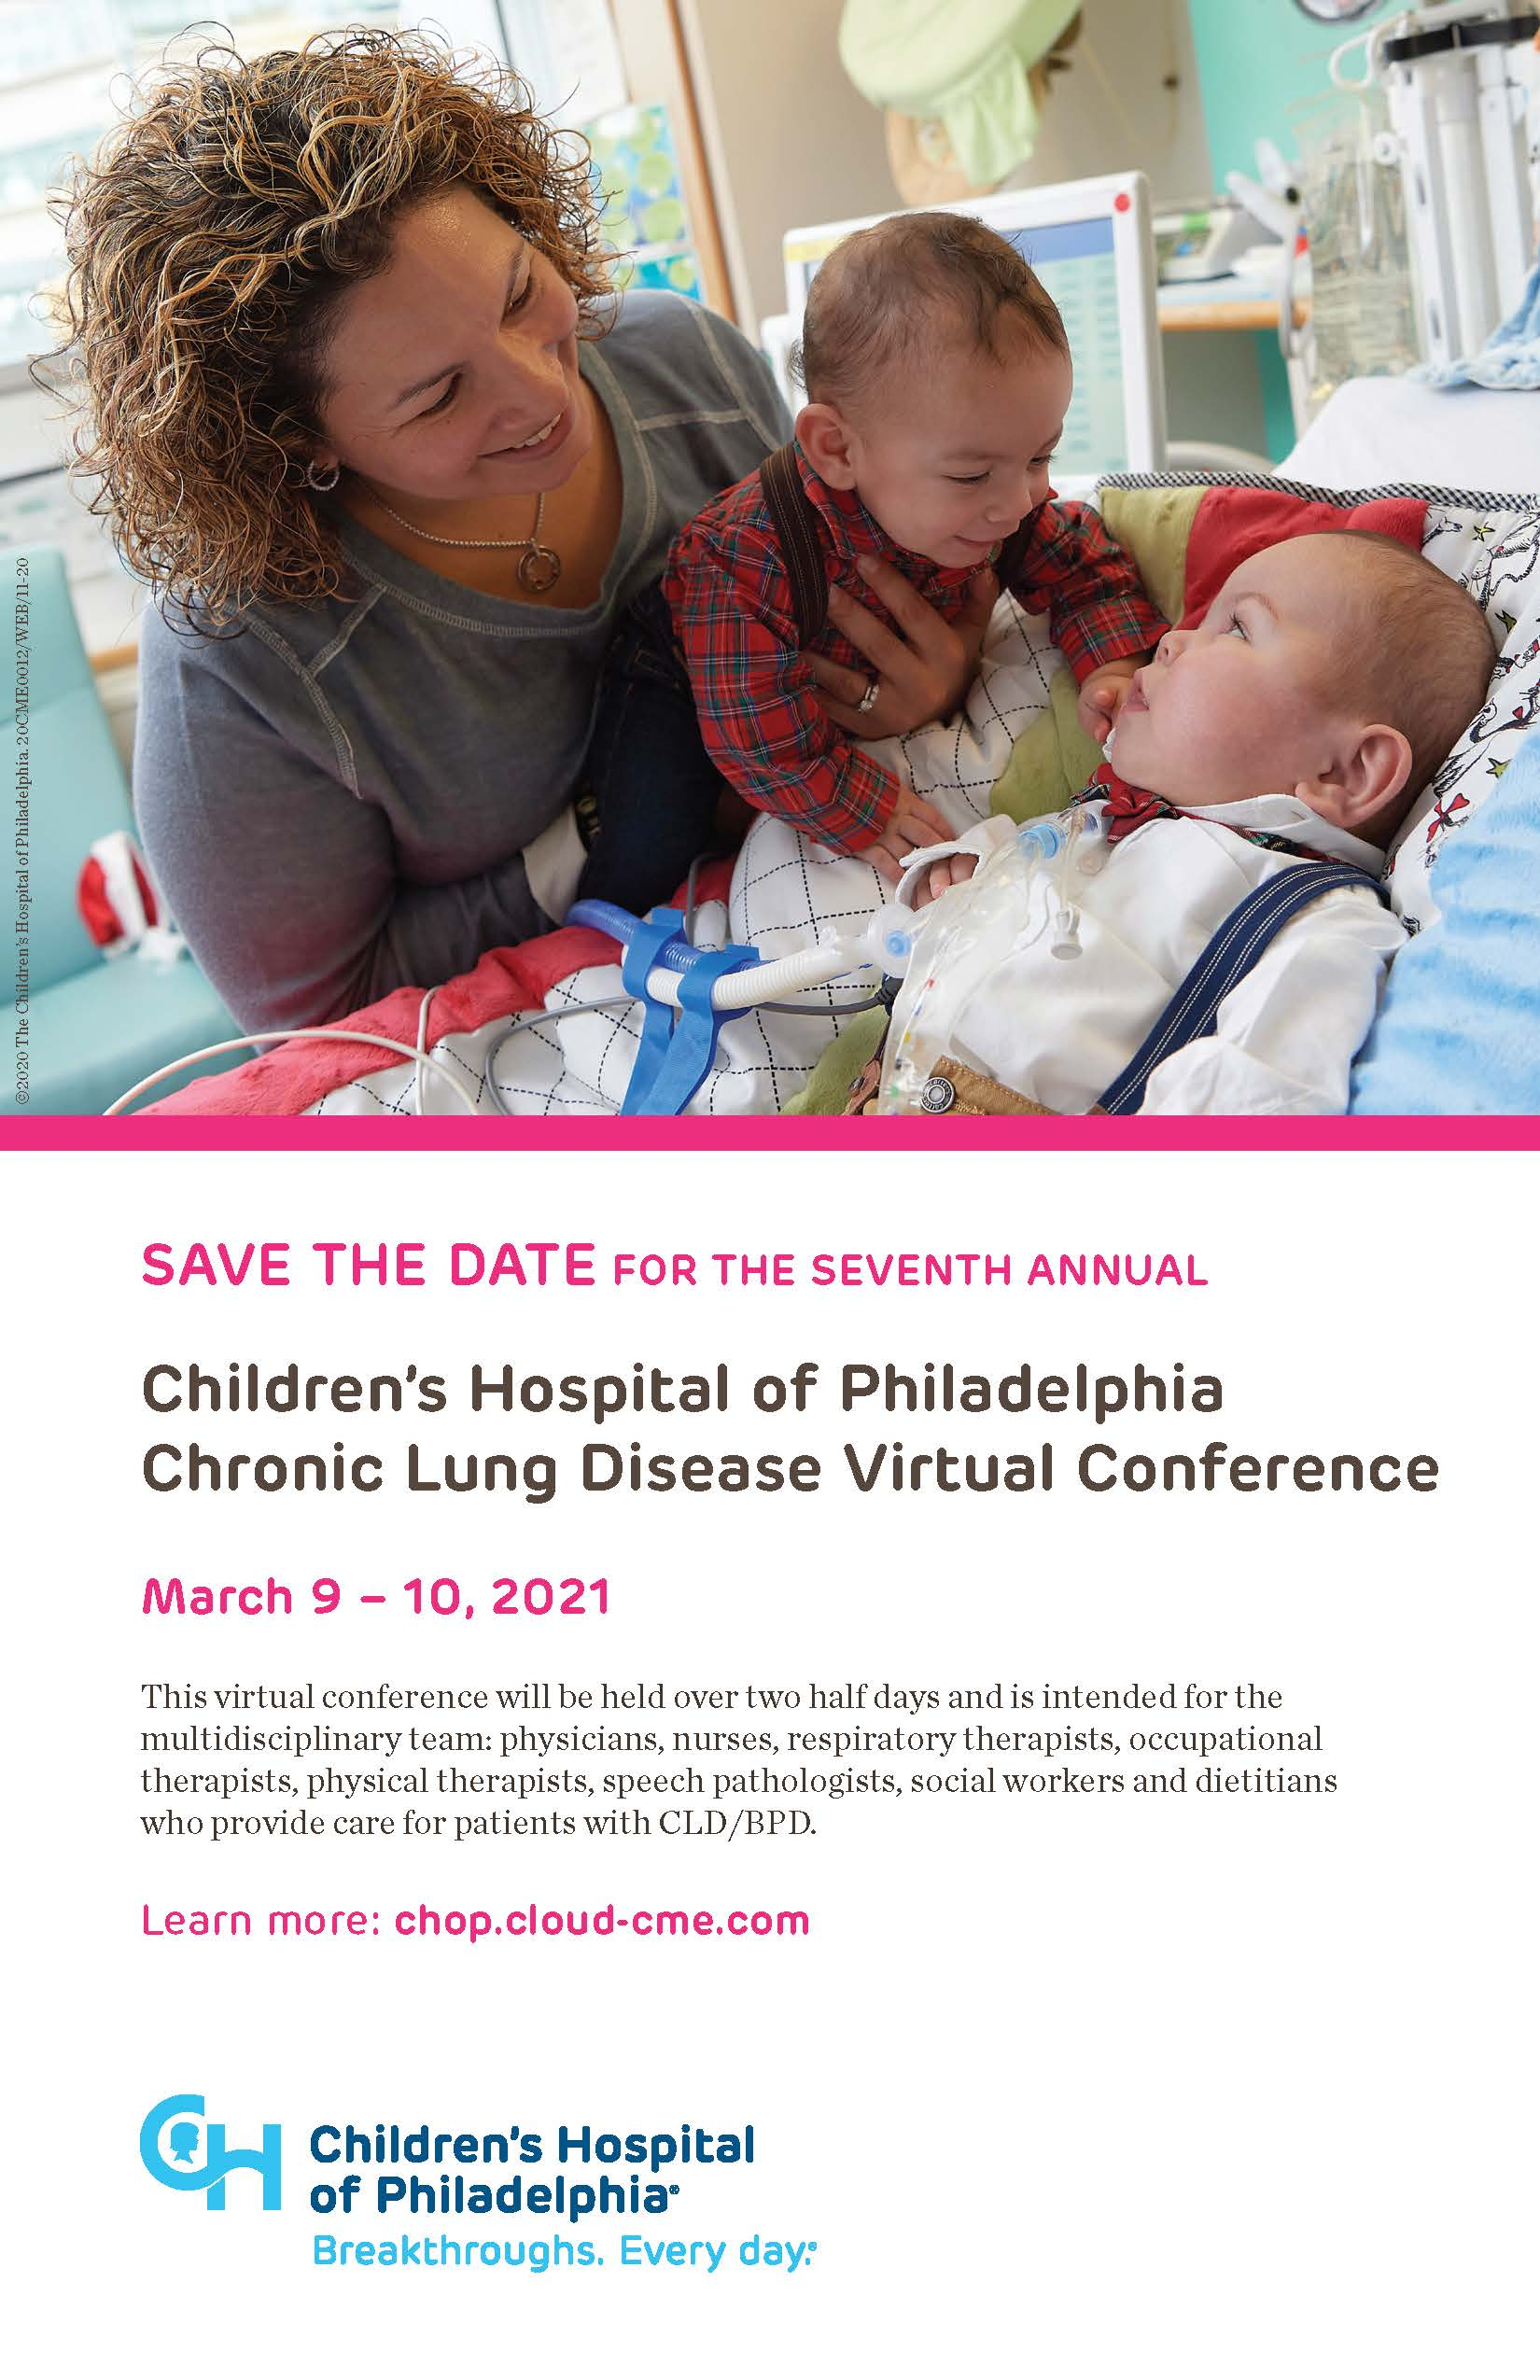 Children's Hospital of Philadelphia Chronic Lung Disease Virtual Conference Banner